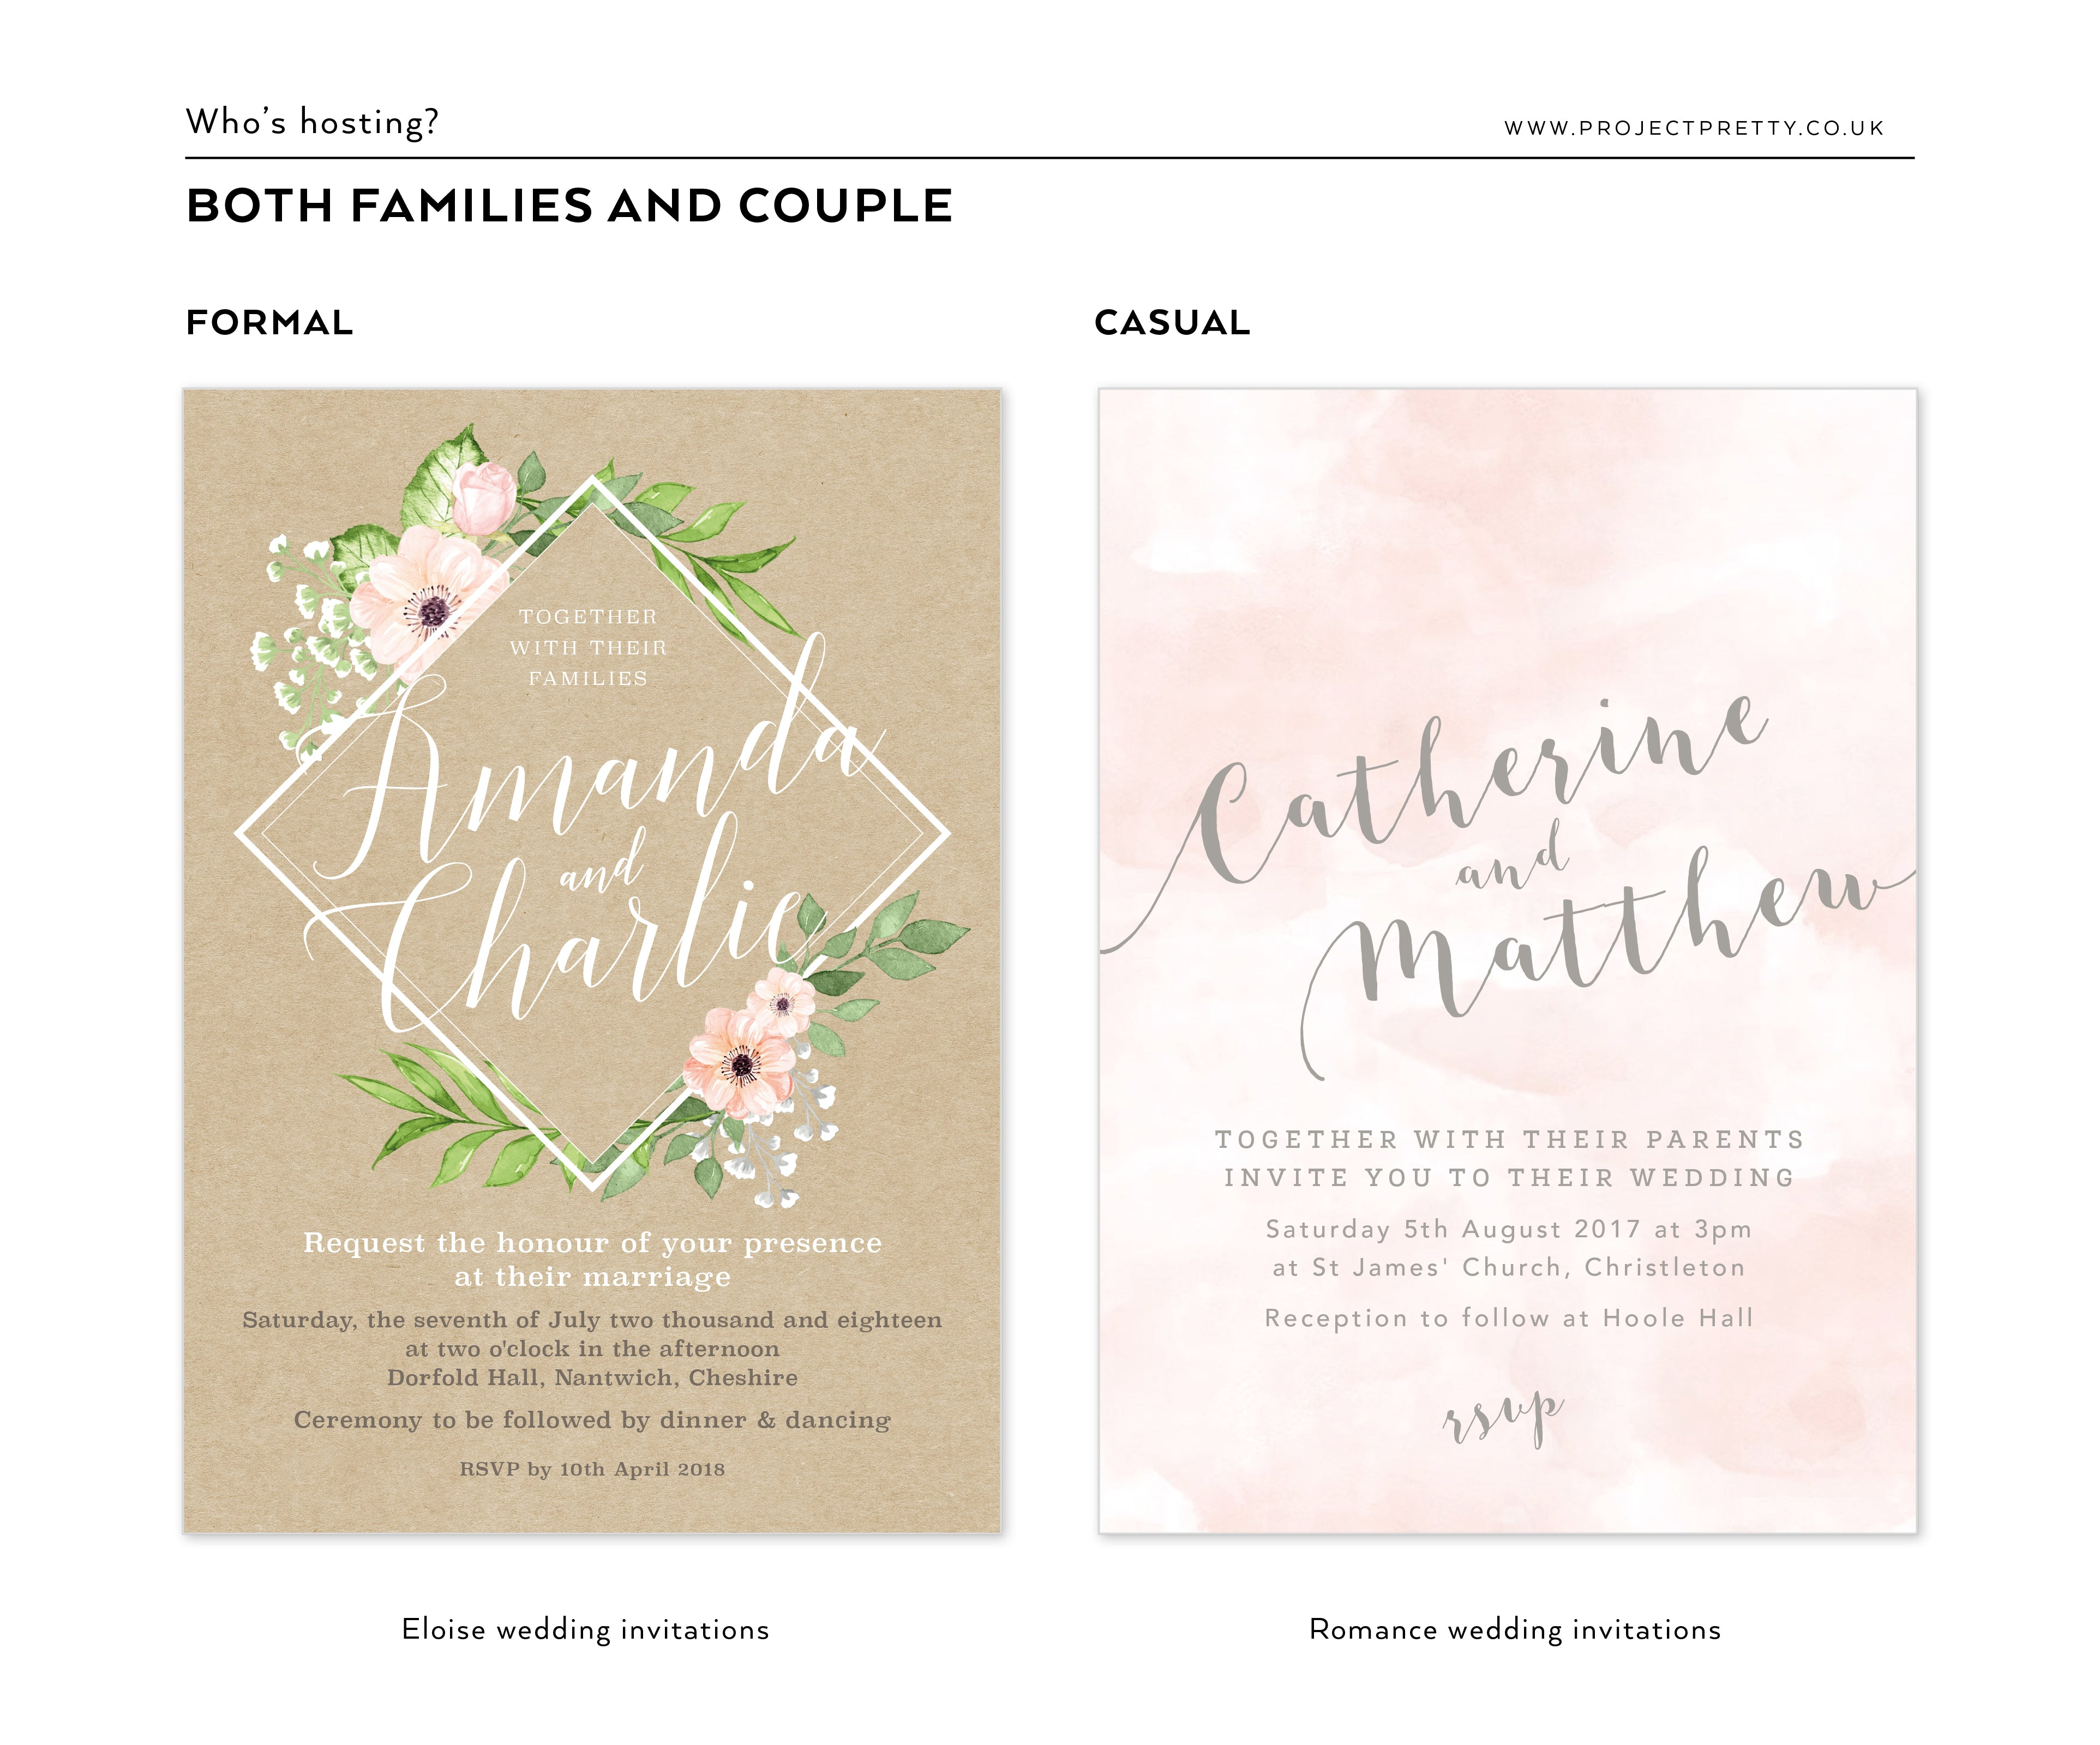 how to word your wedding invitations project pretty